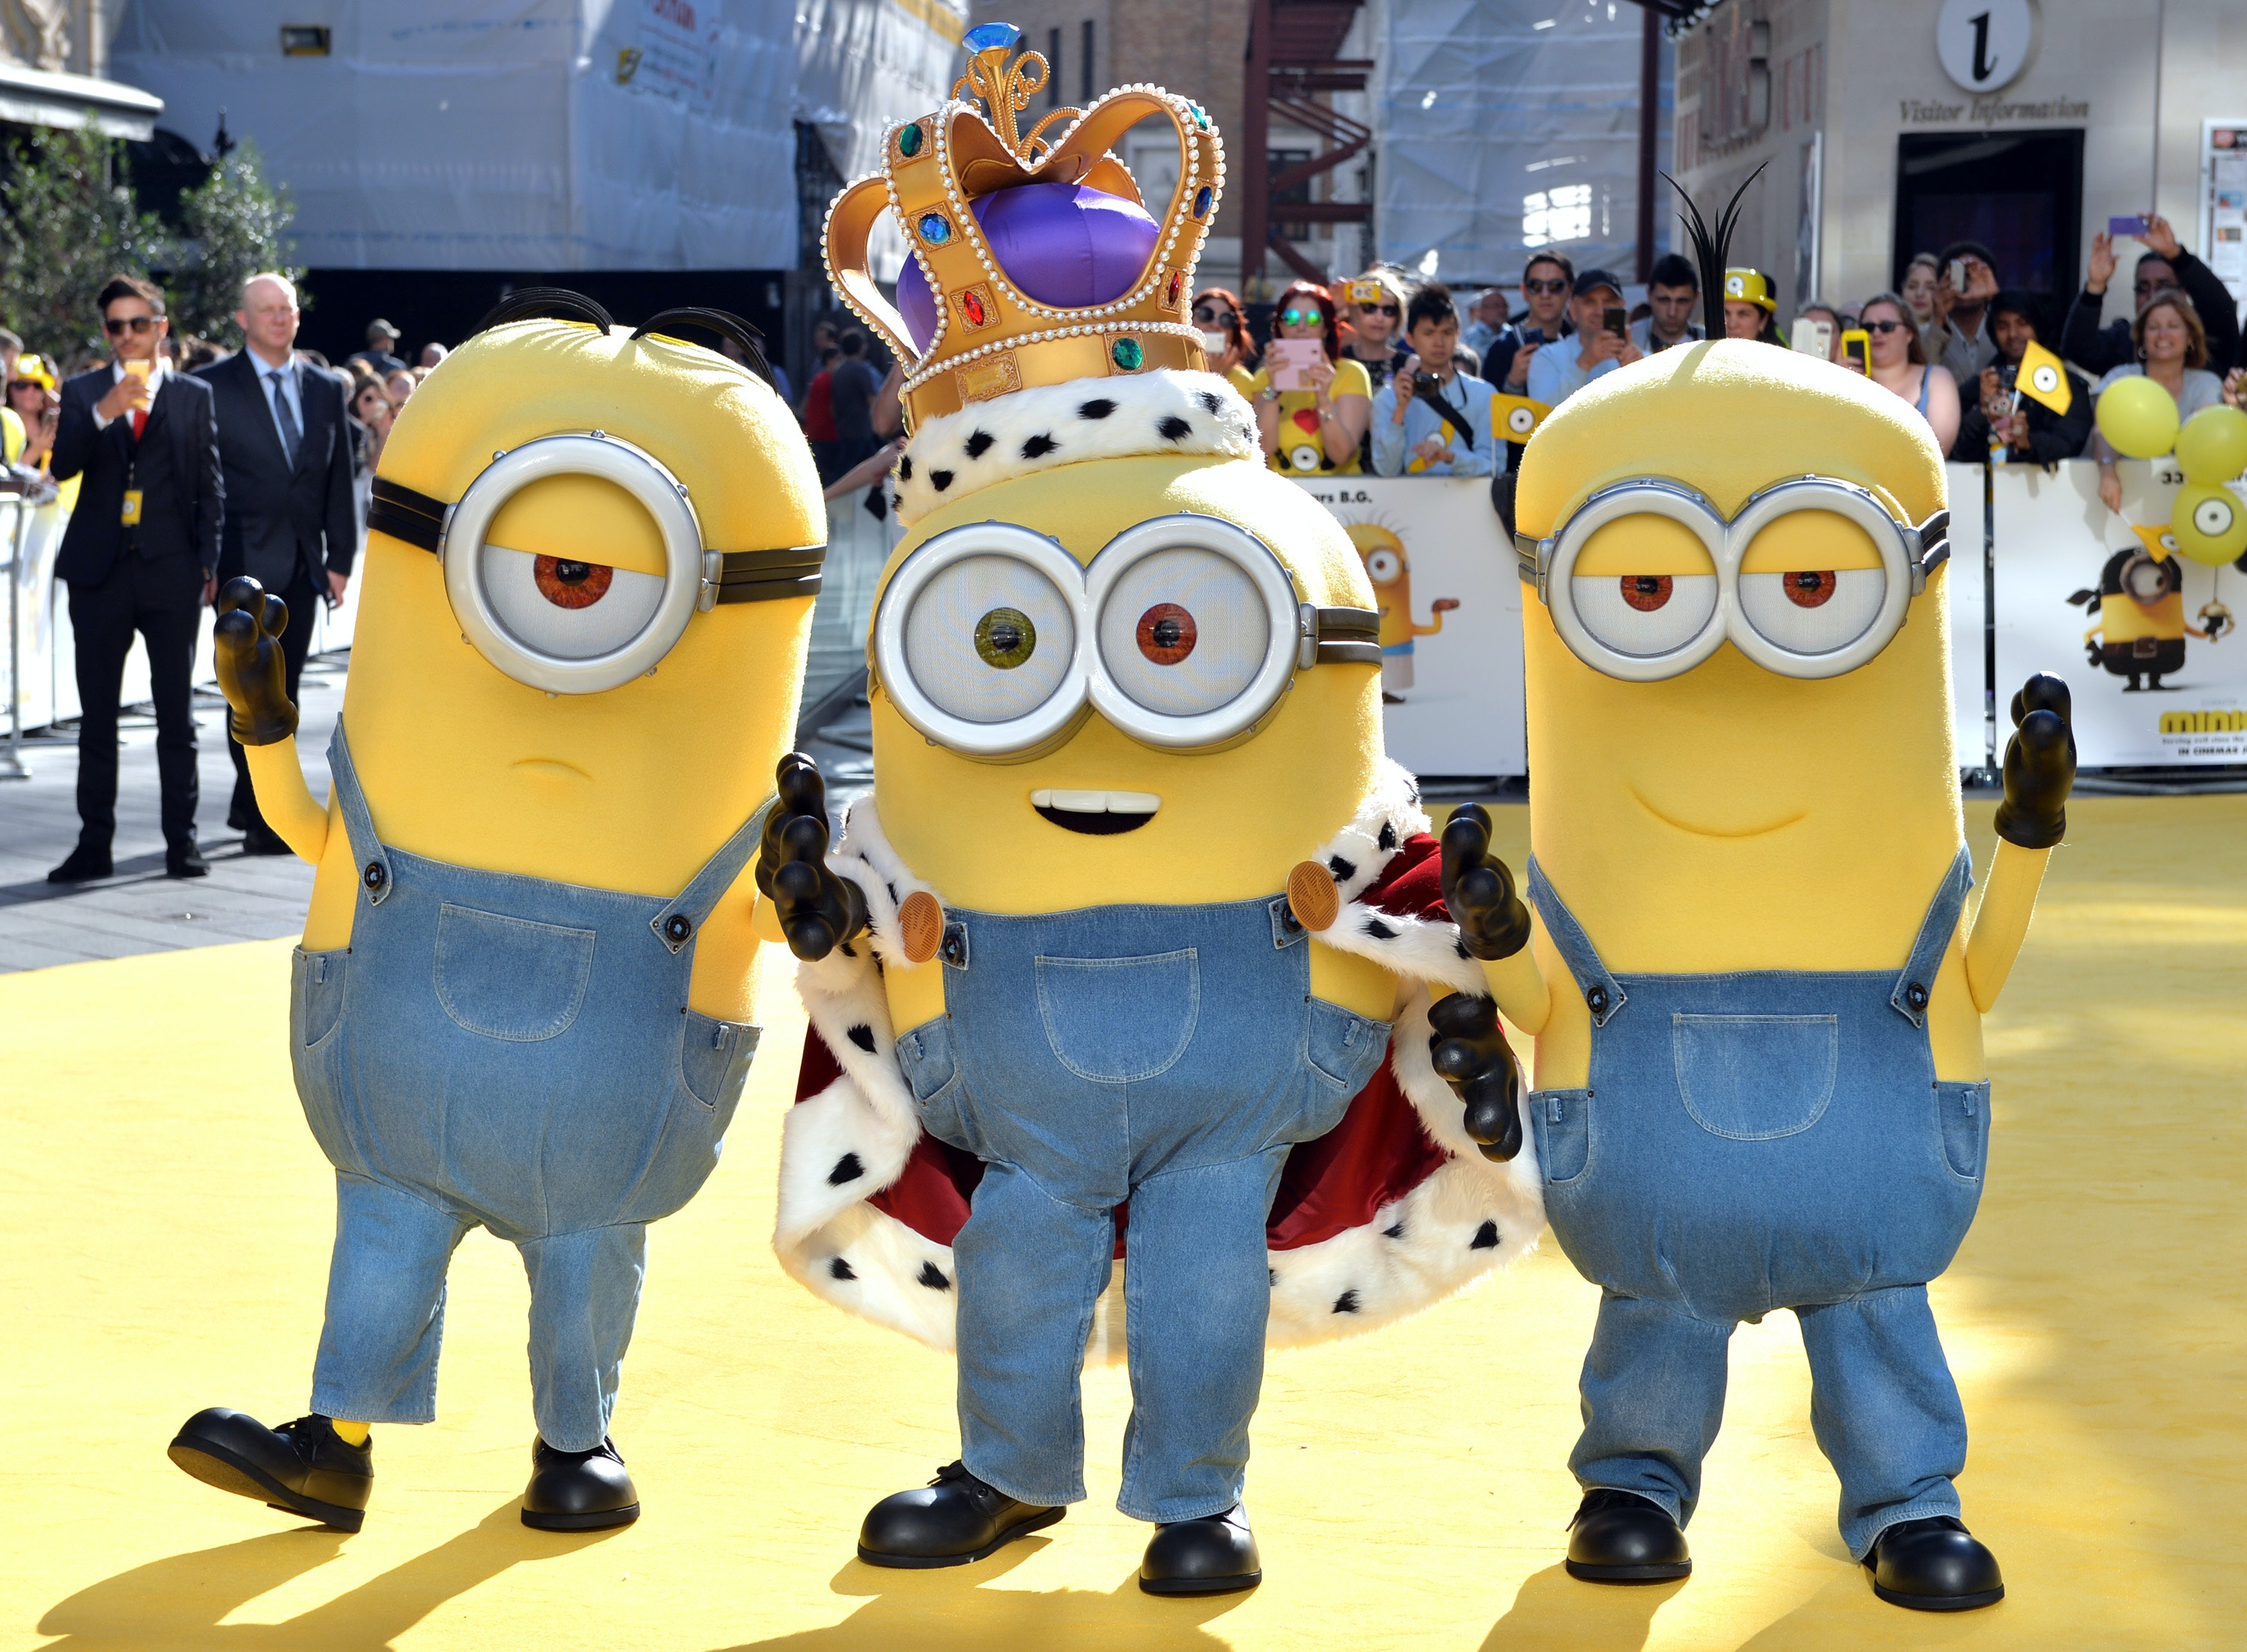 Where To Buy Minions Costumes For Kids Who Love Their Little Yellow Friends